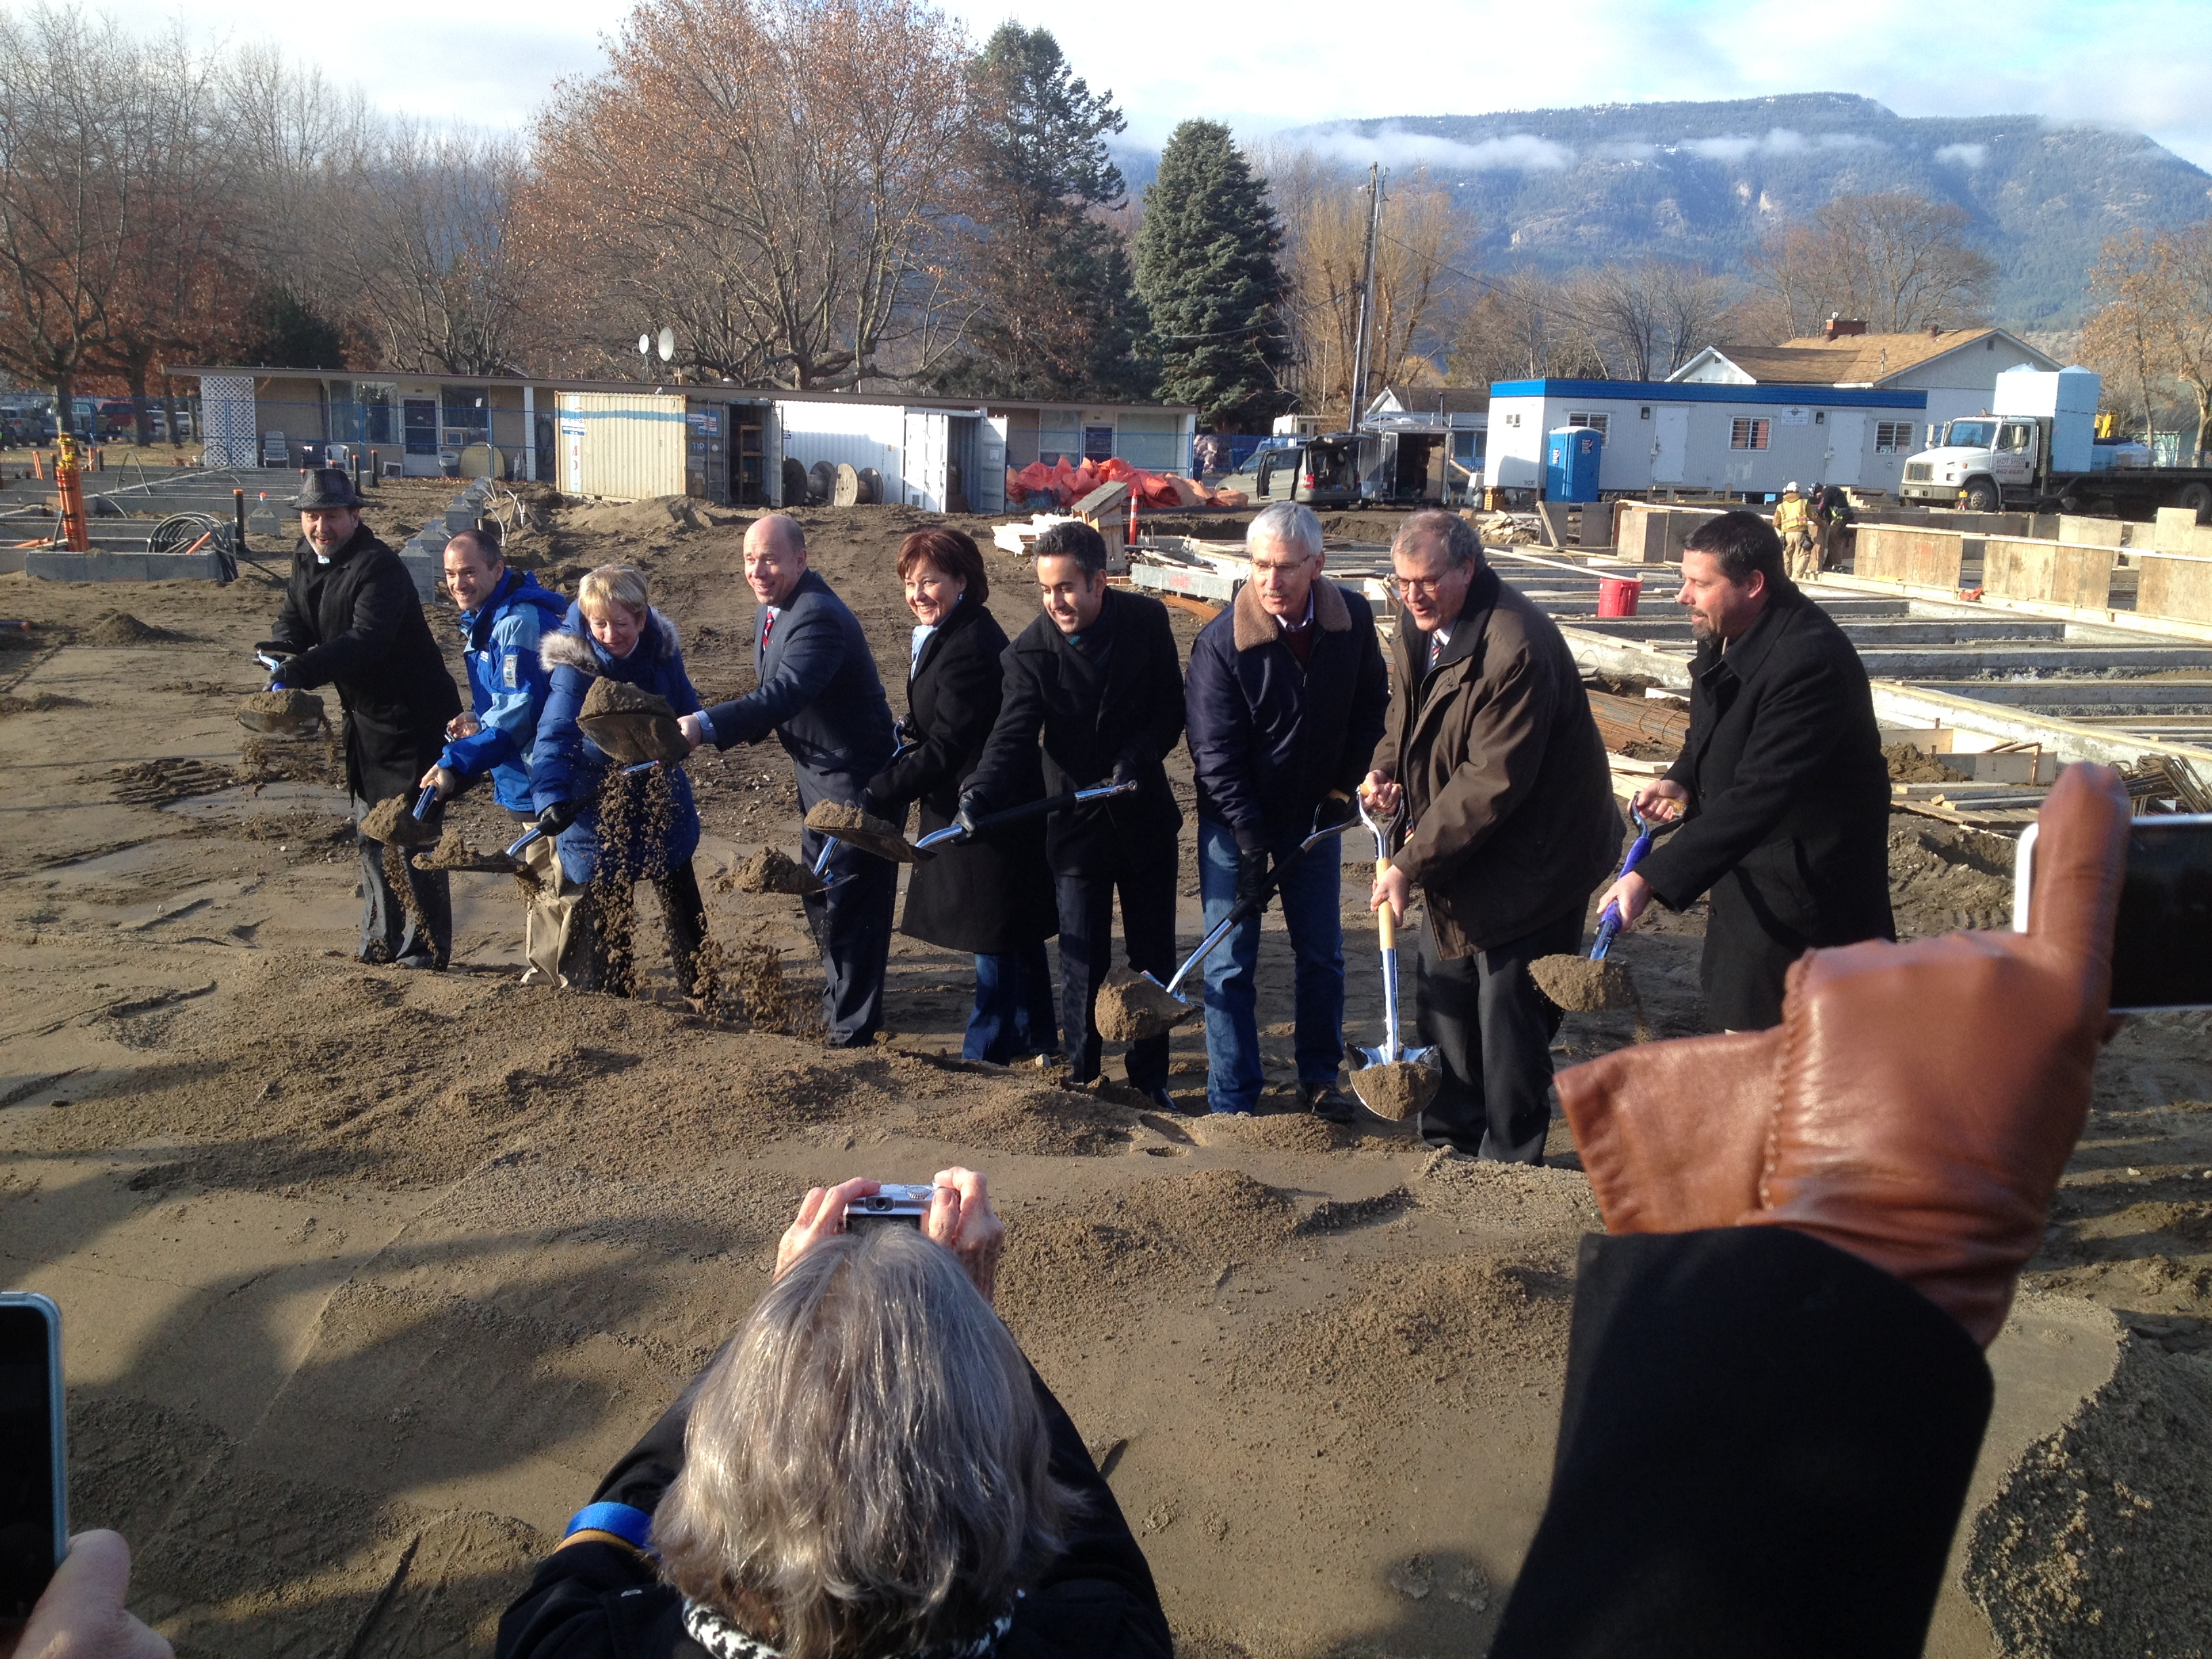 Pleasantvale Sod Turning